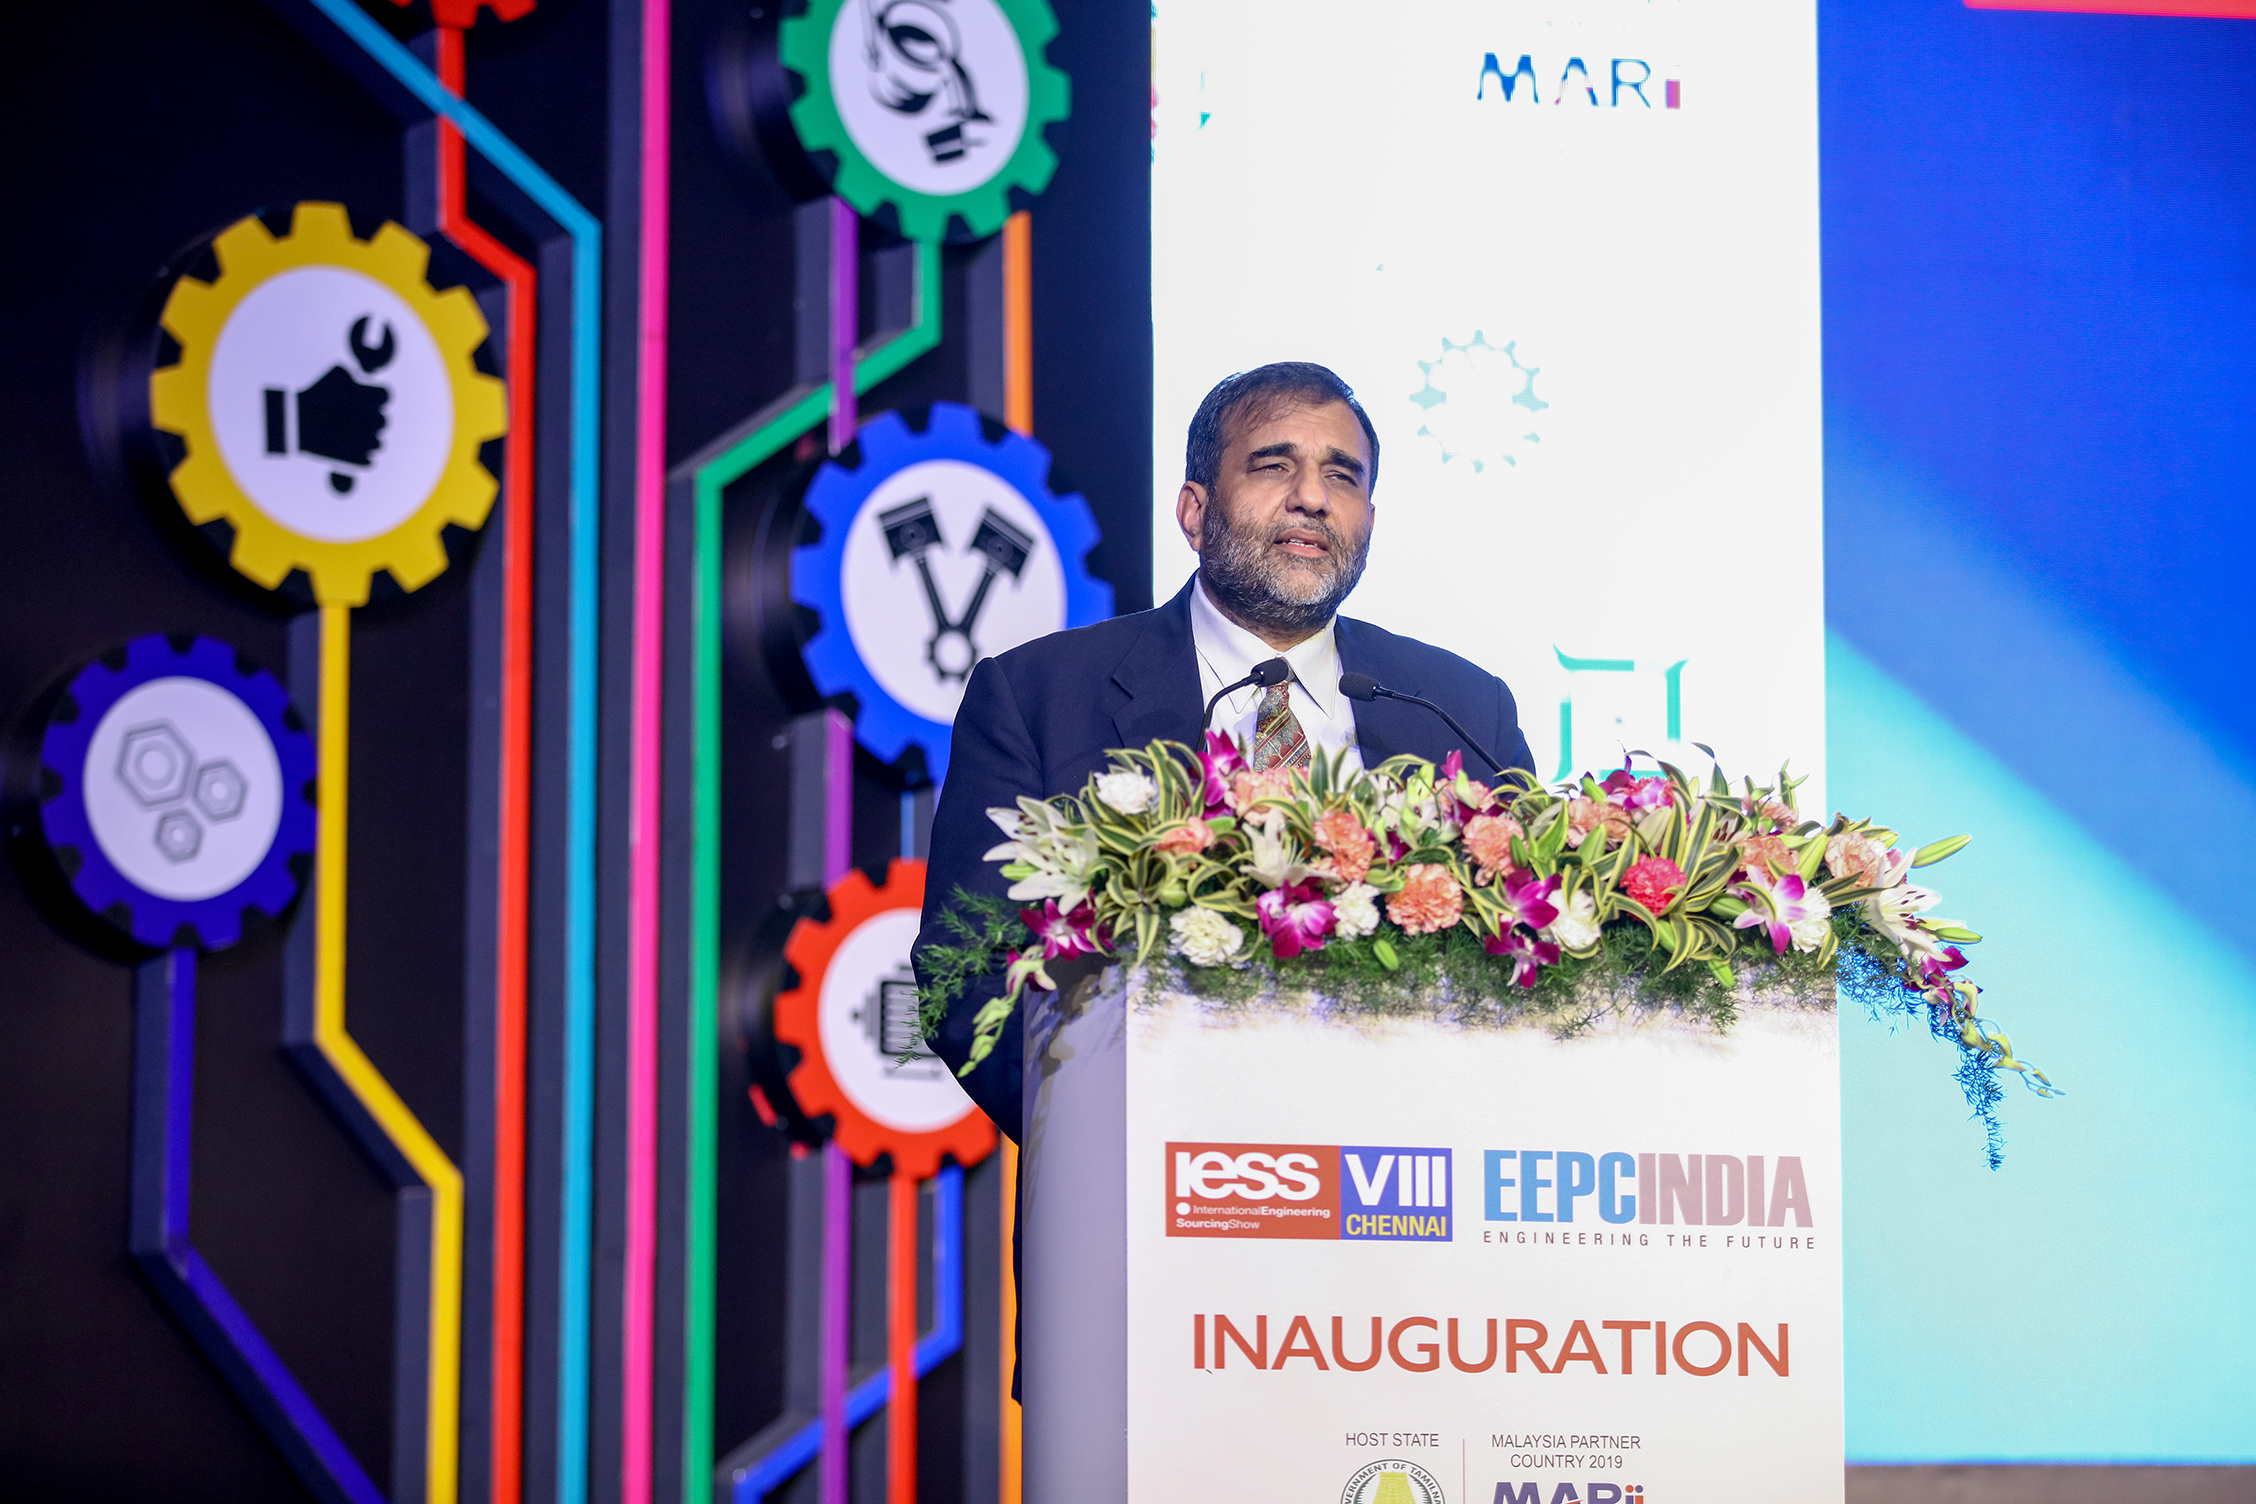 Dr Anup Wadhawan, Commerce Secretary, Dept of Commerce, Ministry of Commerce and Industry, Govt of India addressing gathering at the Opening Ceremony